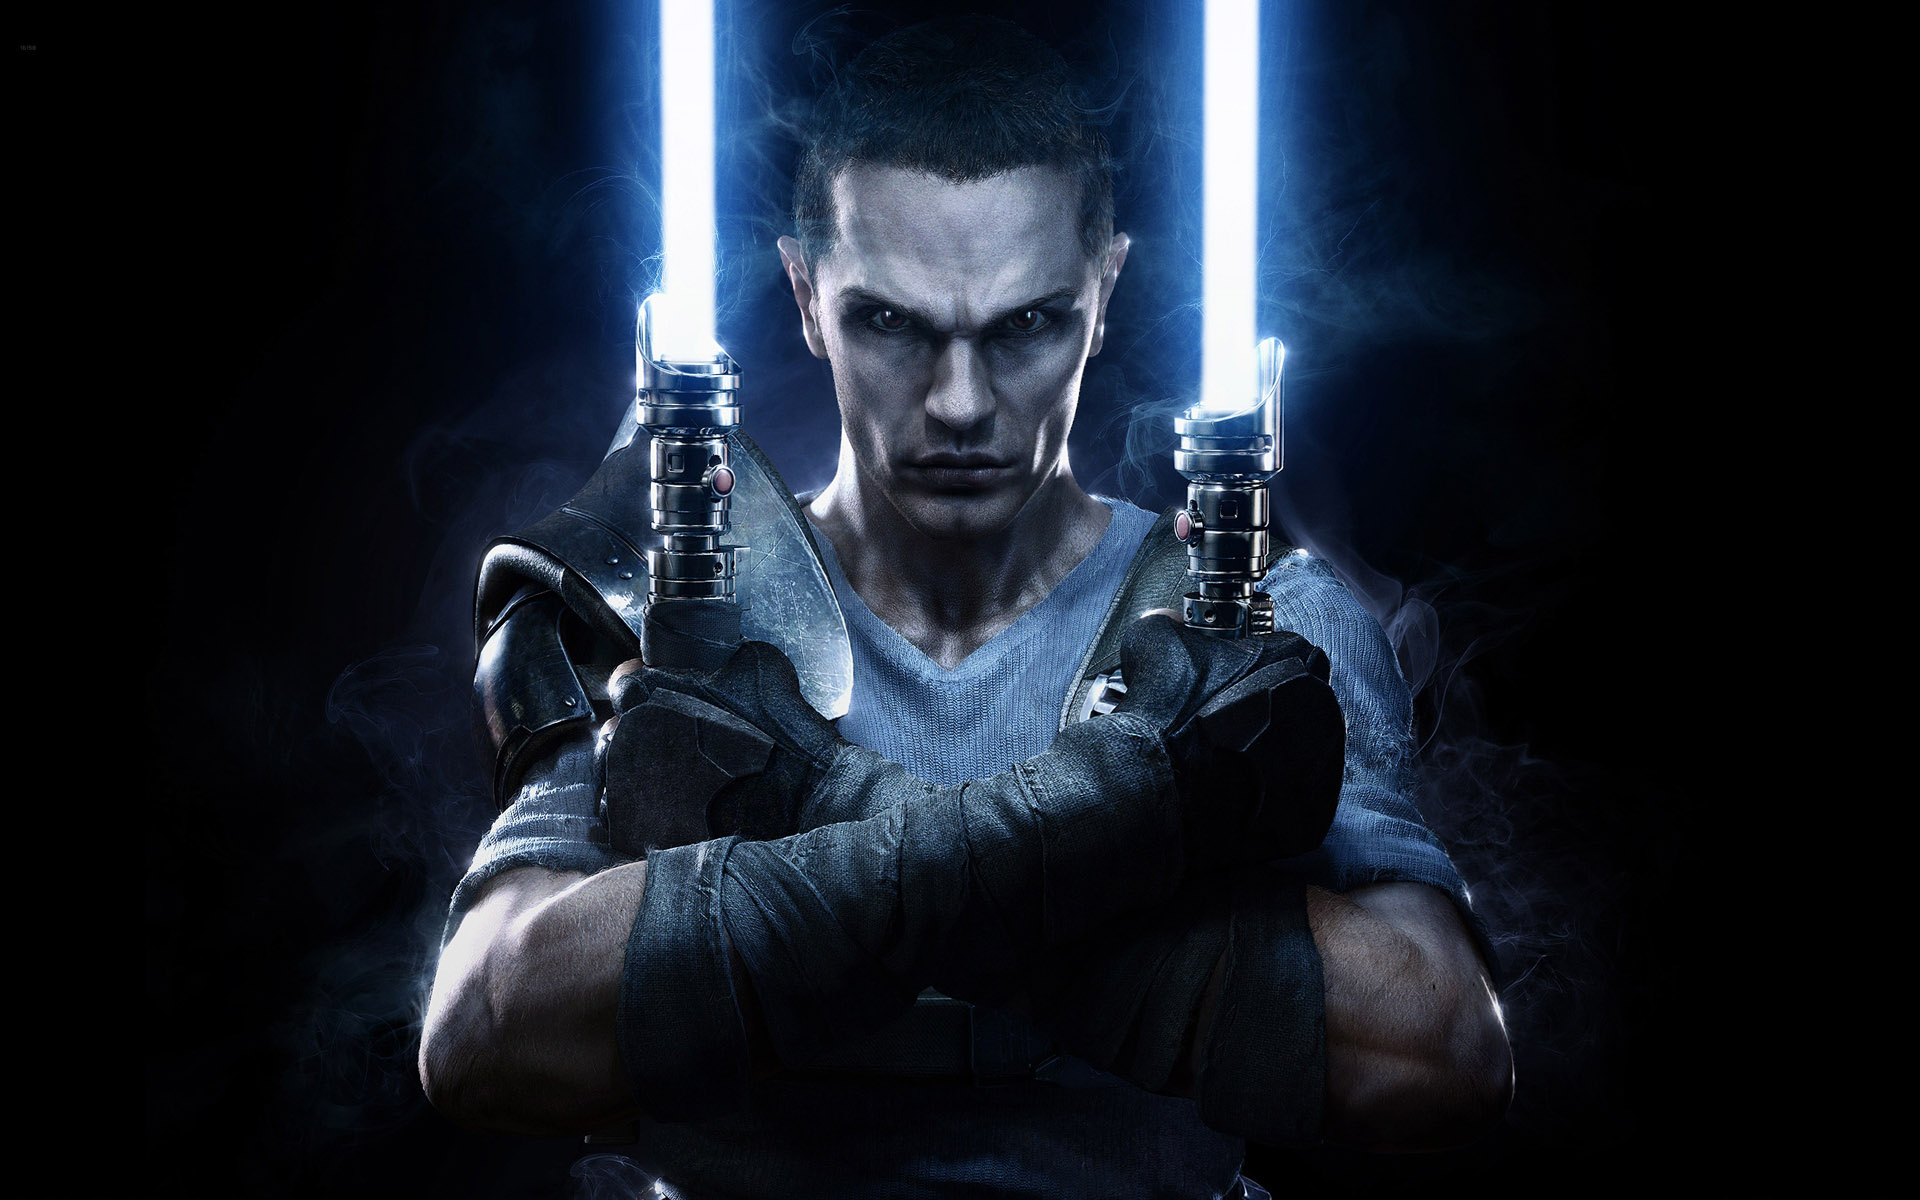 Star wars стар варс the force unleashed 2 картинки